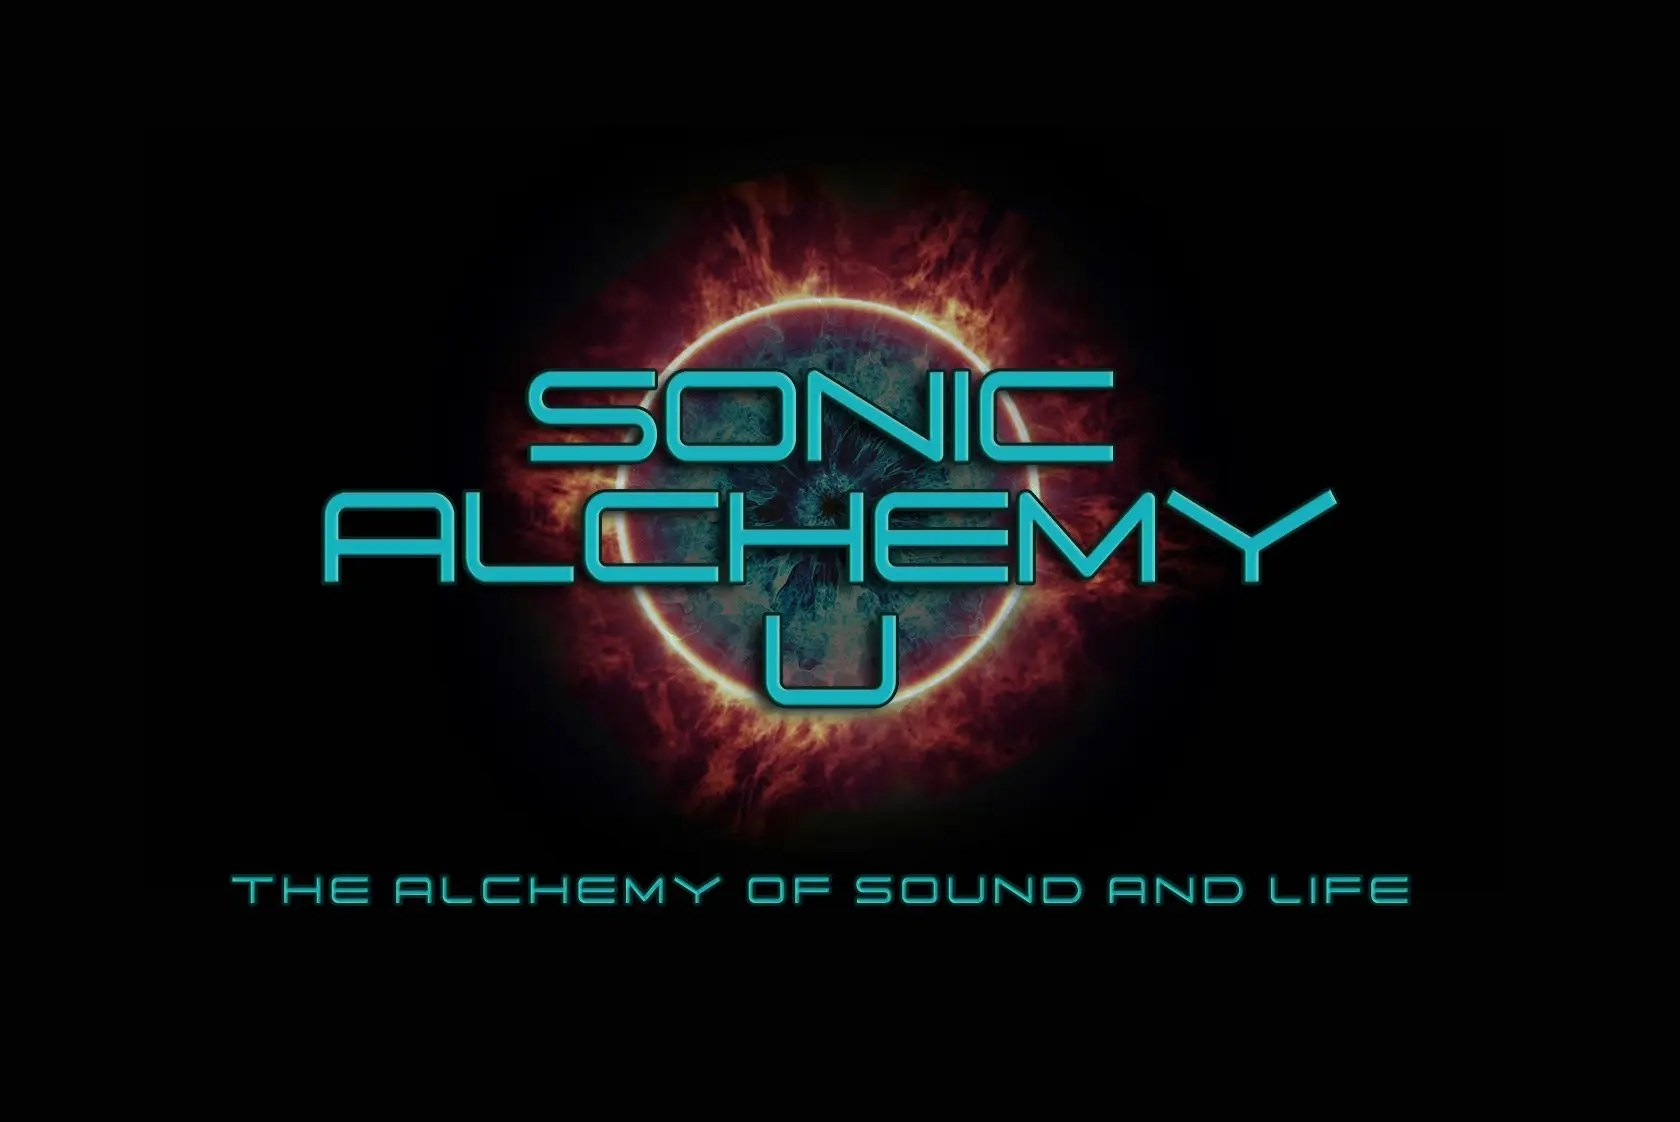 online piano lessons, online music lessons, Sonic Alchemy U main logo